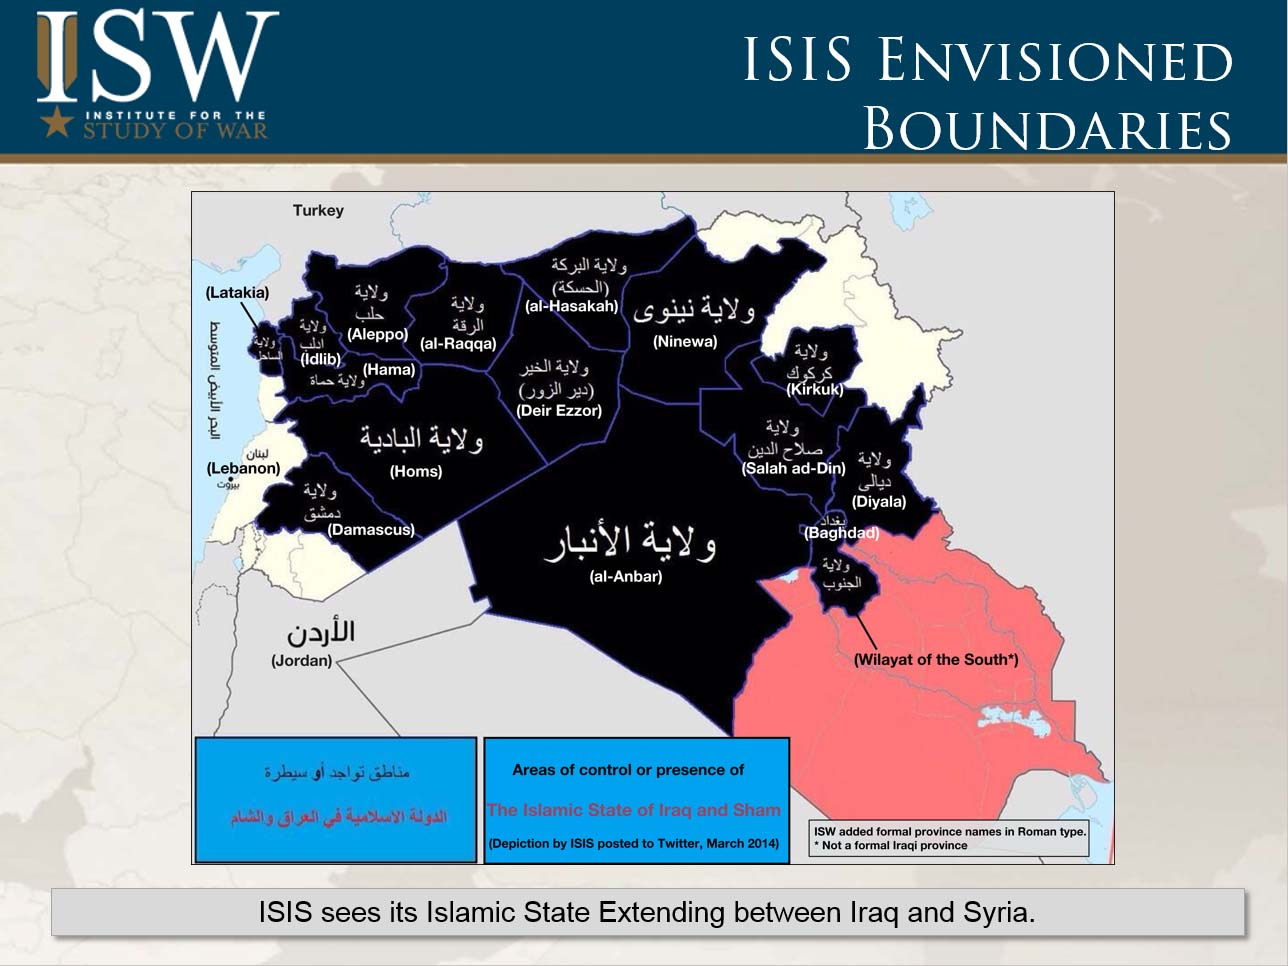 ISIS envisioned boundaries_0